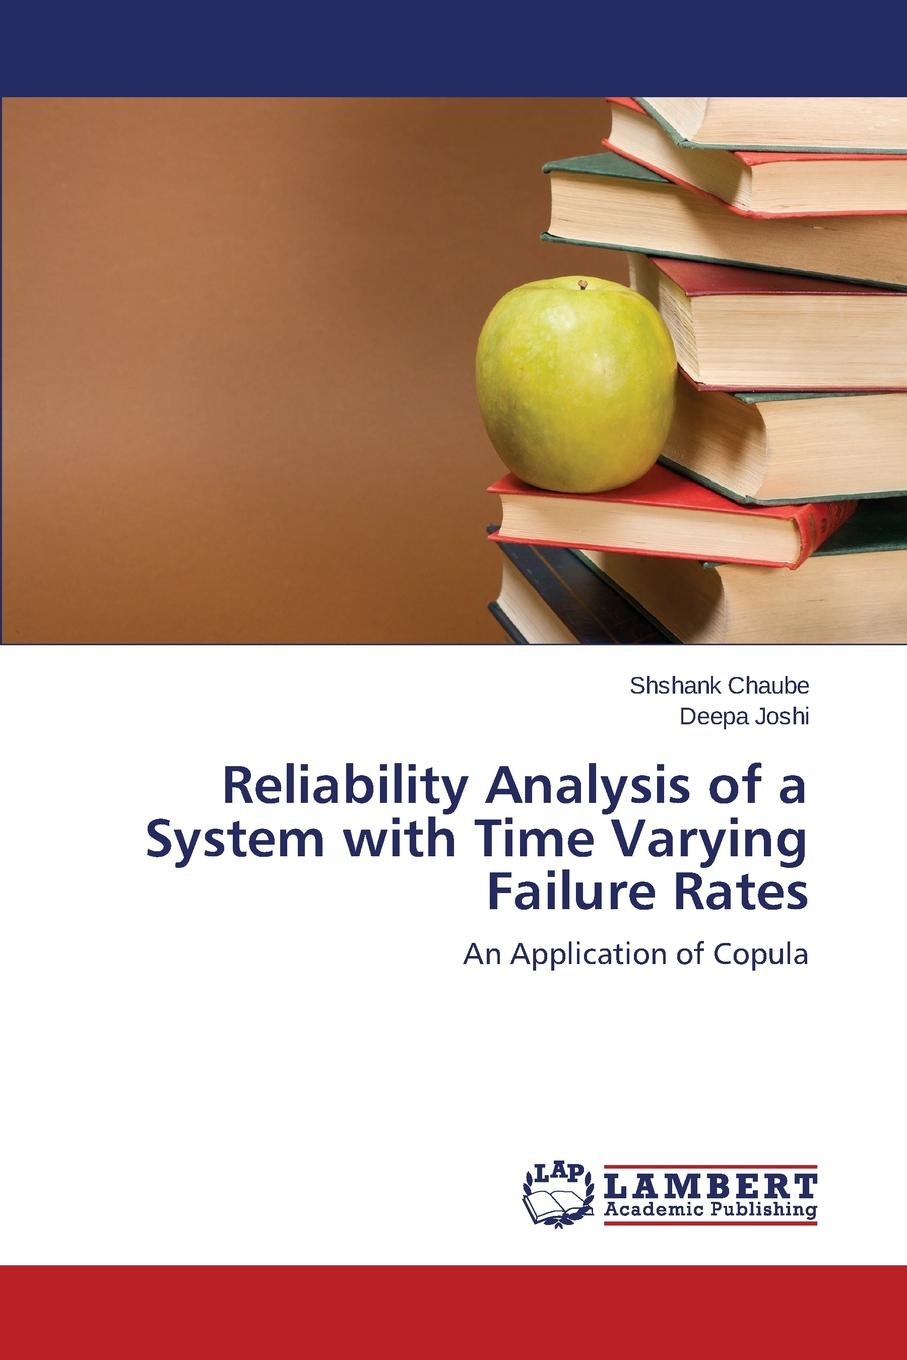 Chaube Shshank, Joshi Deepa Reliability Analysis of a System with Time Varying Failure Rates bazu marius failure analysis a practical guide for manufacturers of electronic components and systems